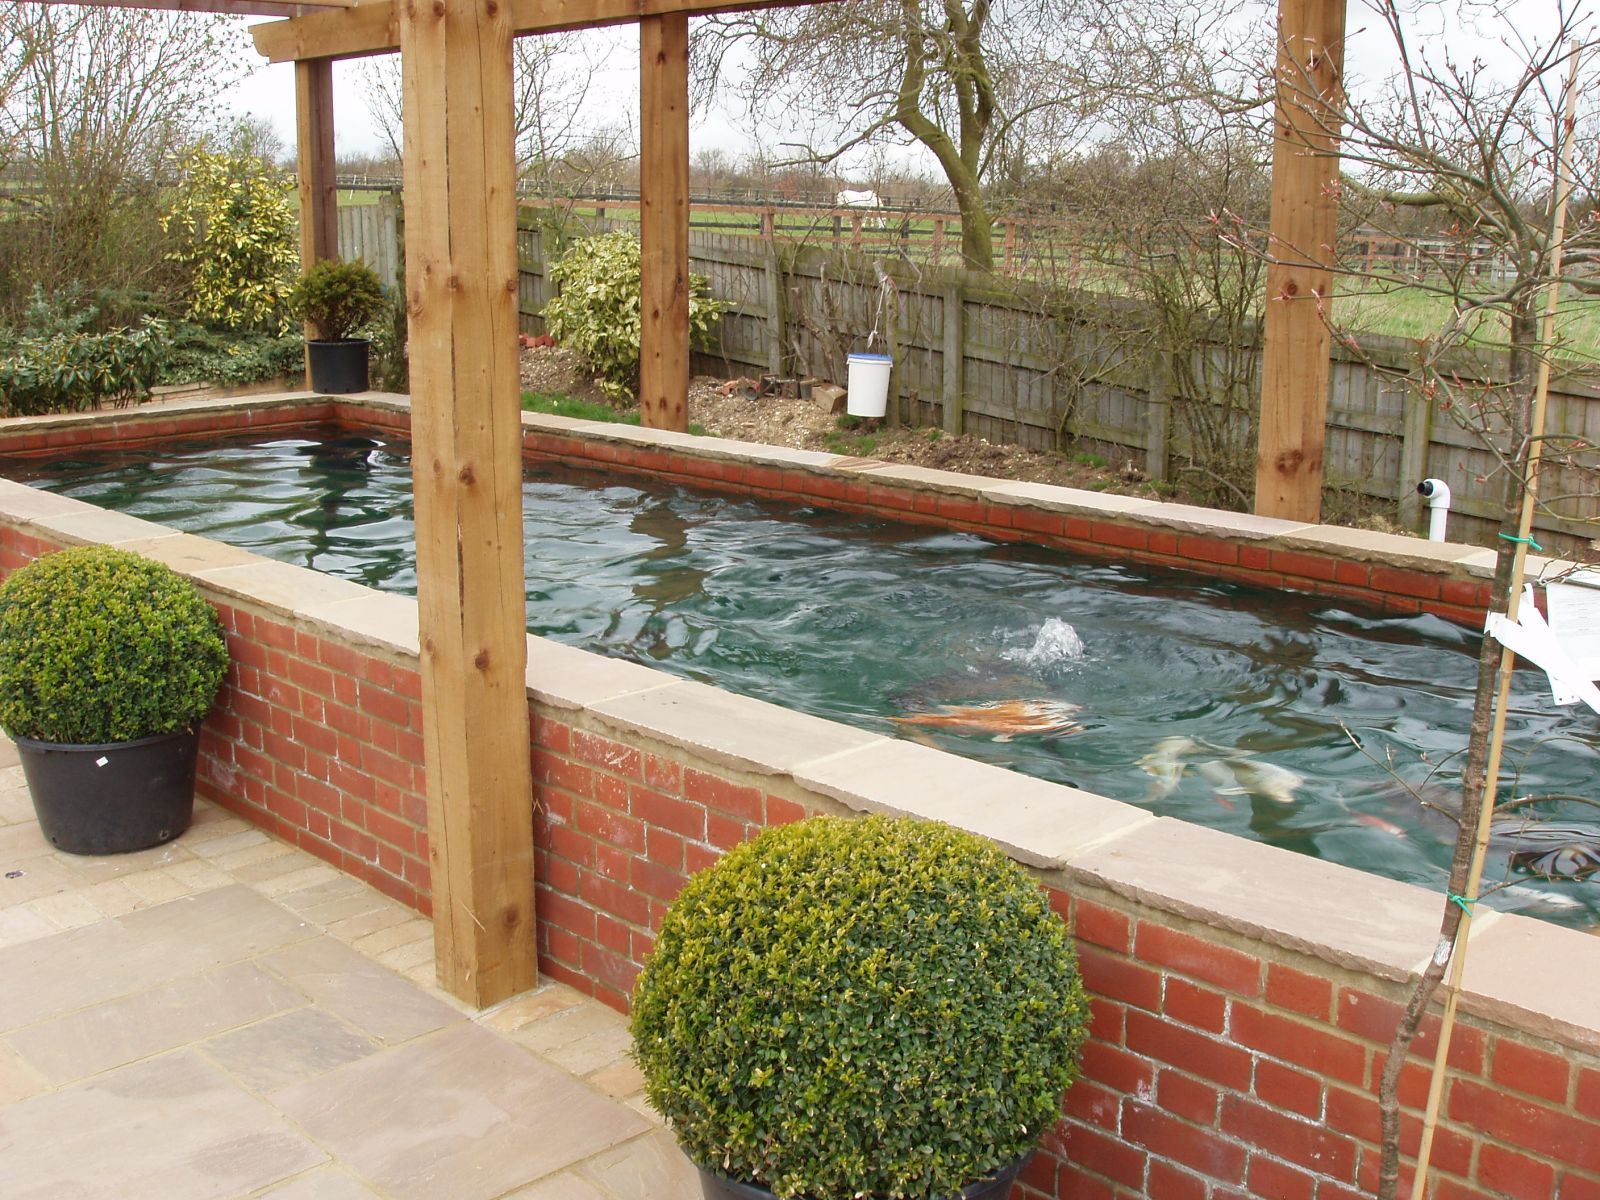 Pond design ideas raised koi ponds pond stars uk dorset for Square pond ideas